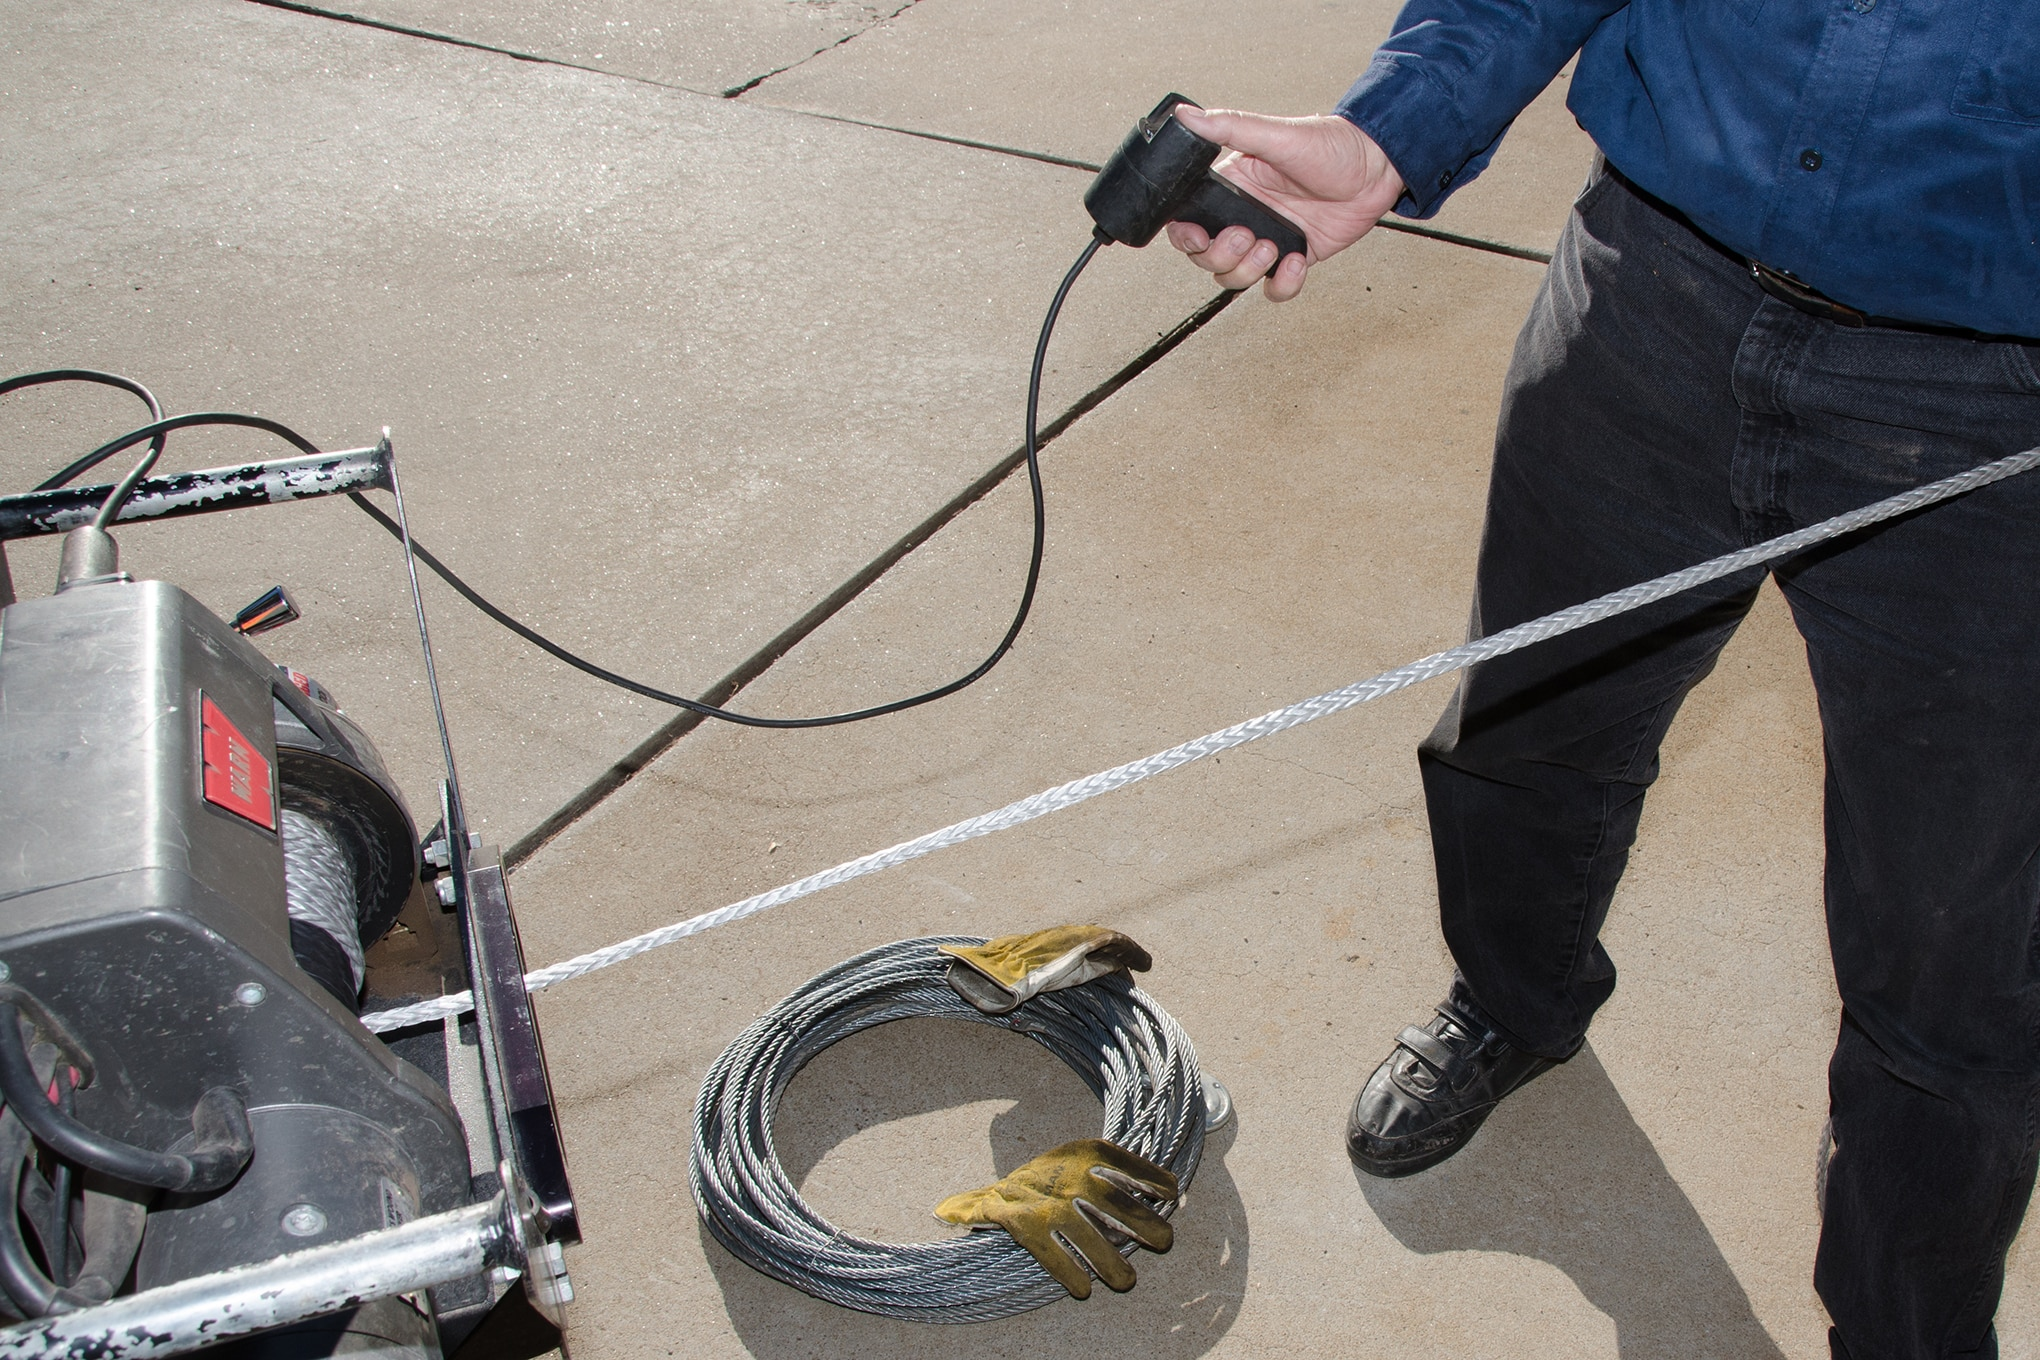 021 installing synthetic winch rope spooling in